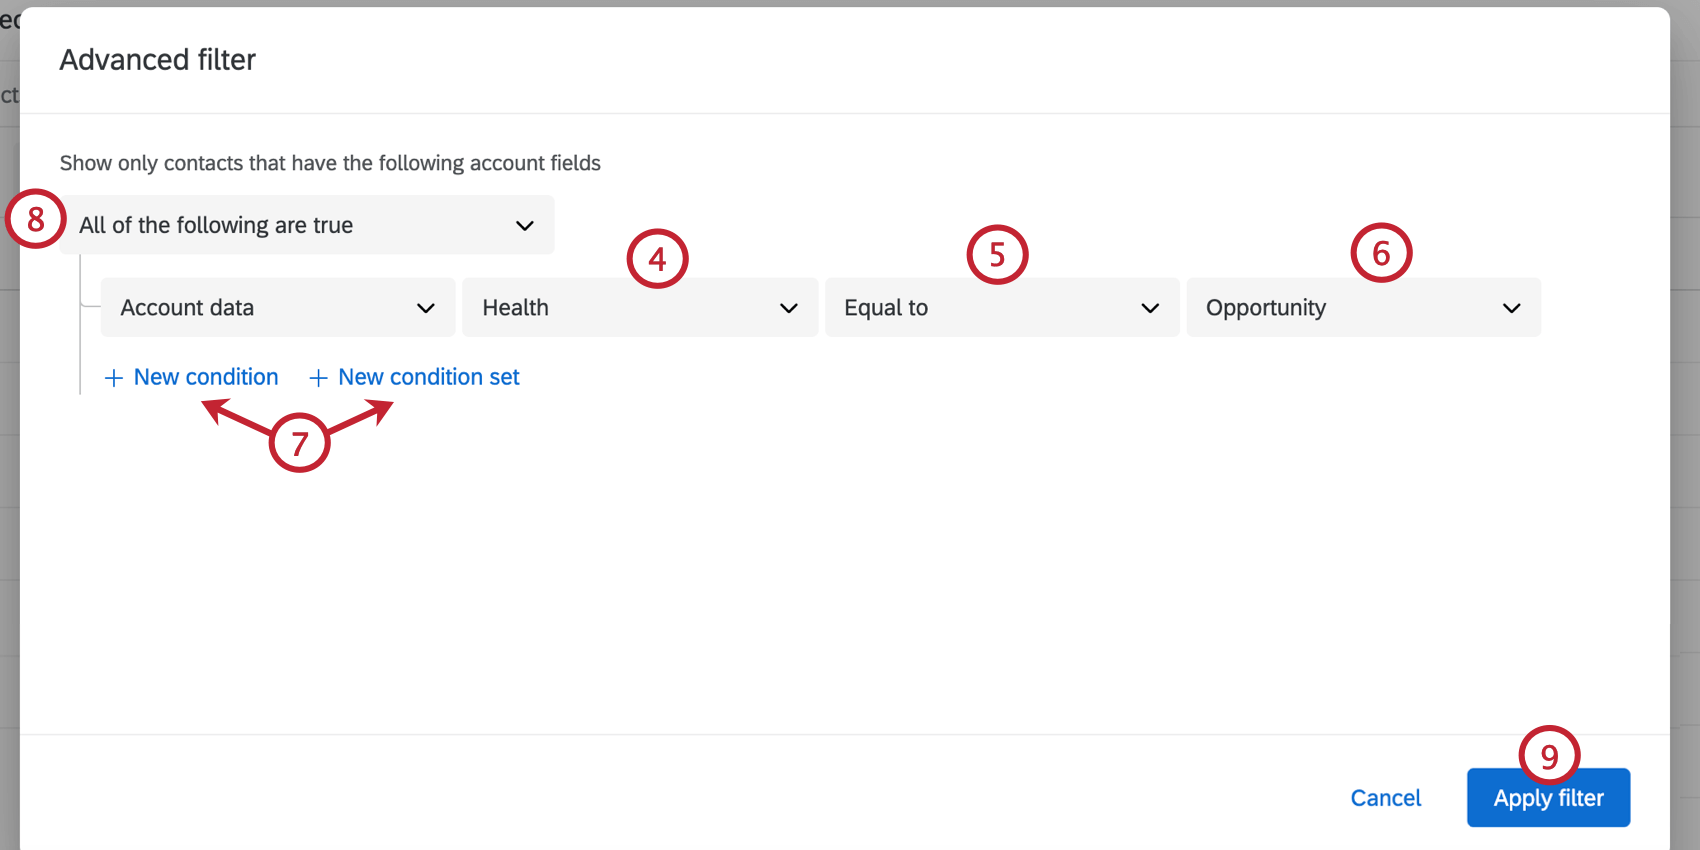 creating the account condition and clicking apply filter in the bottom right